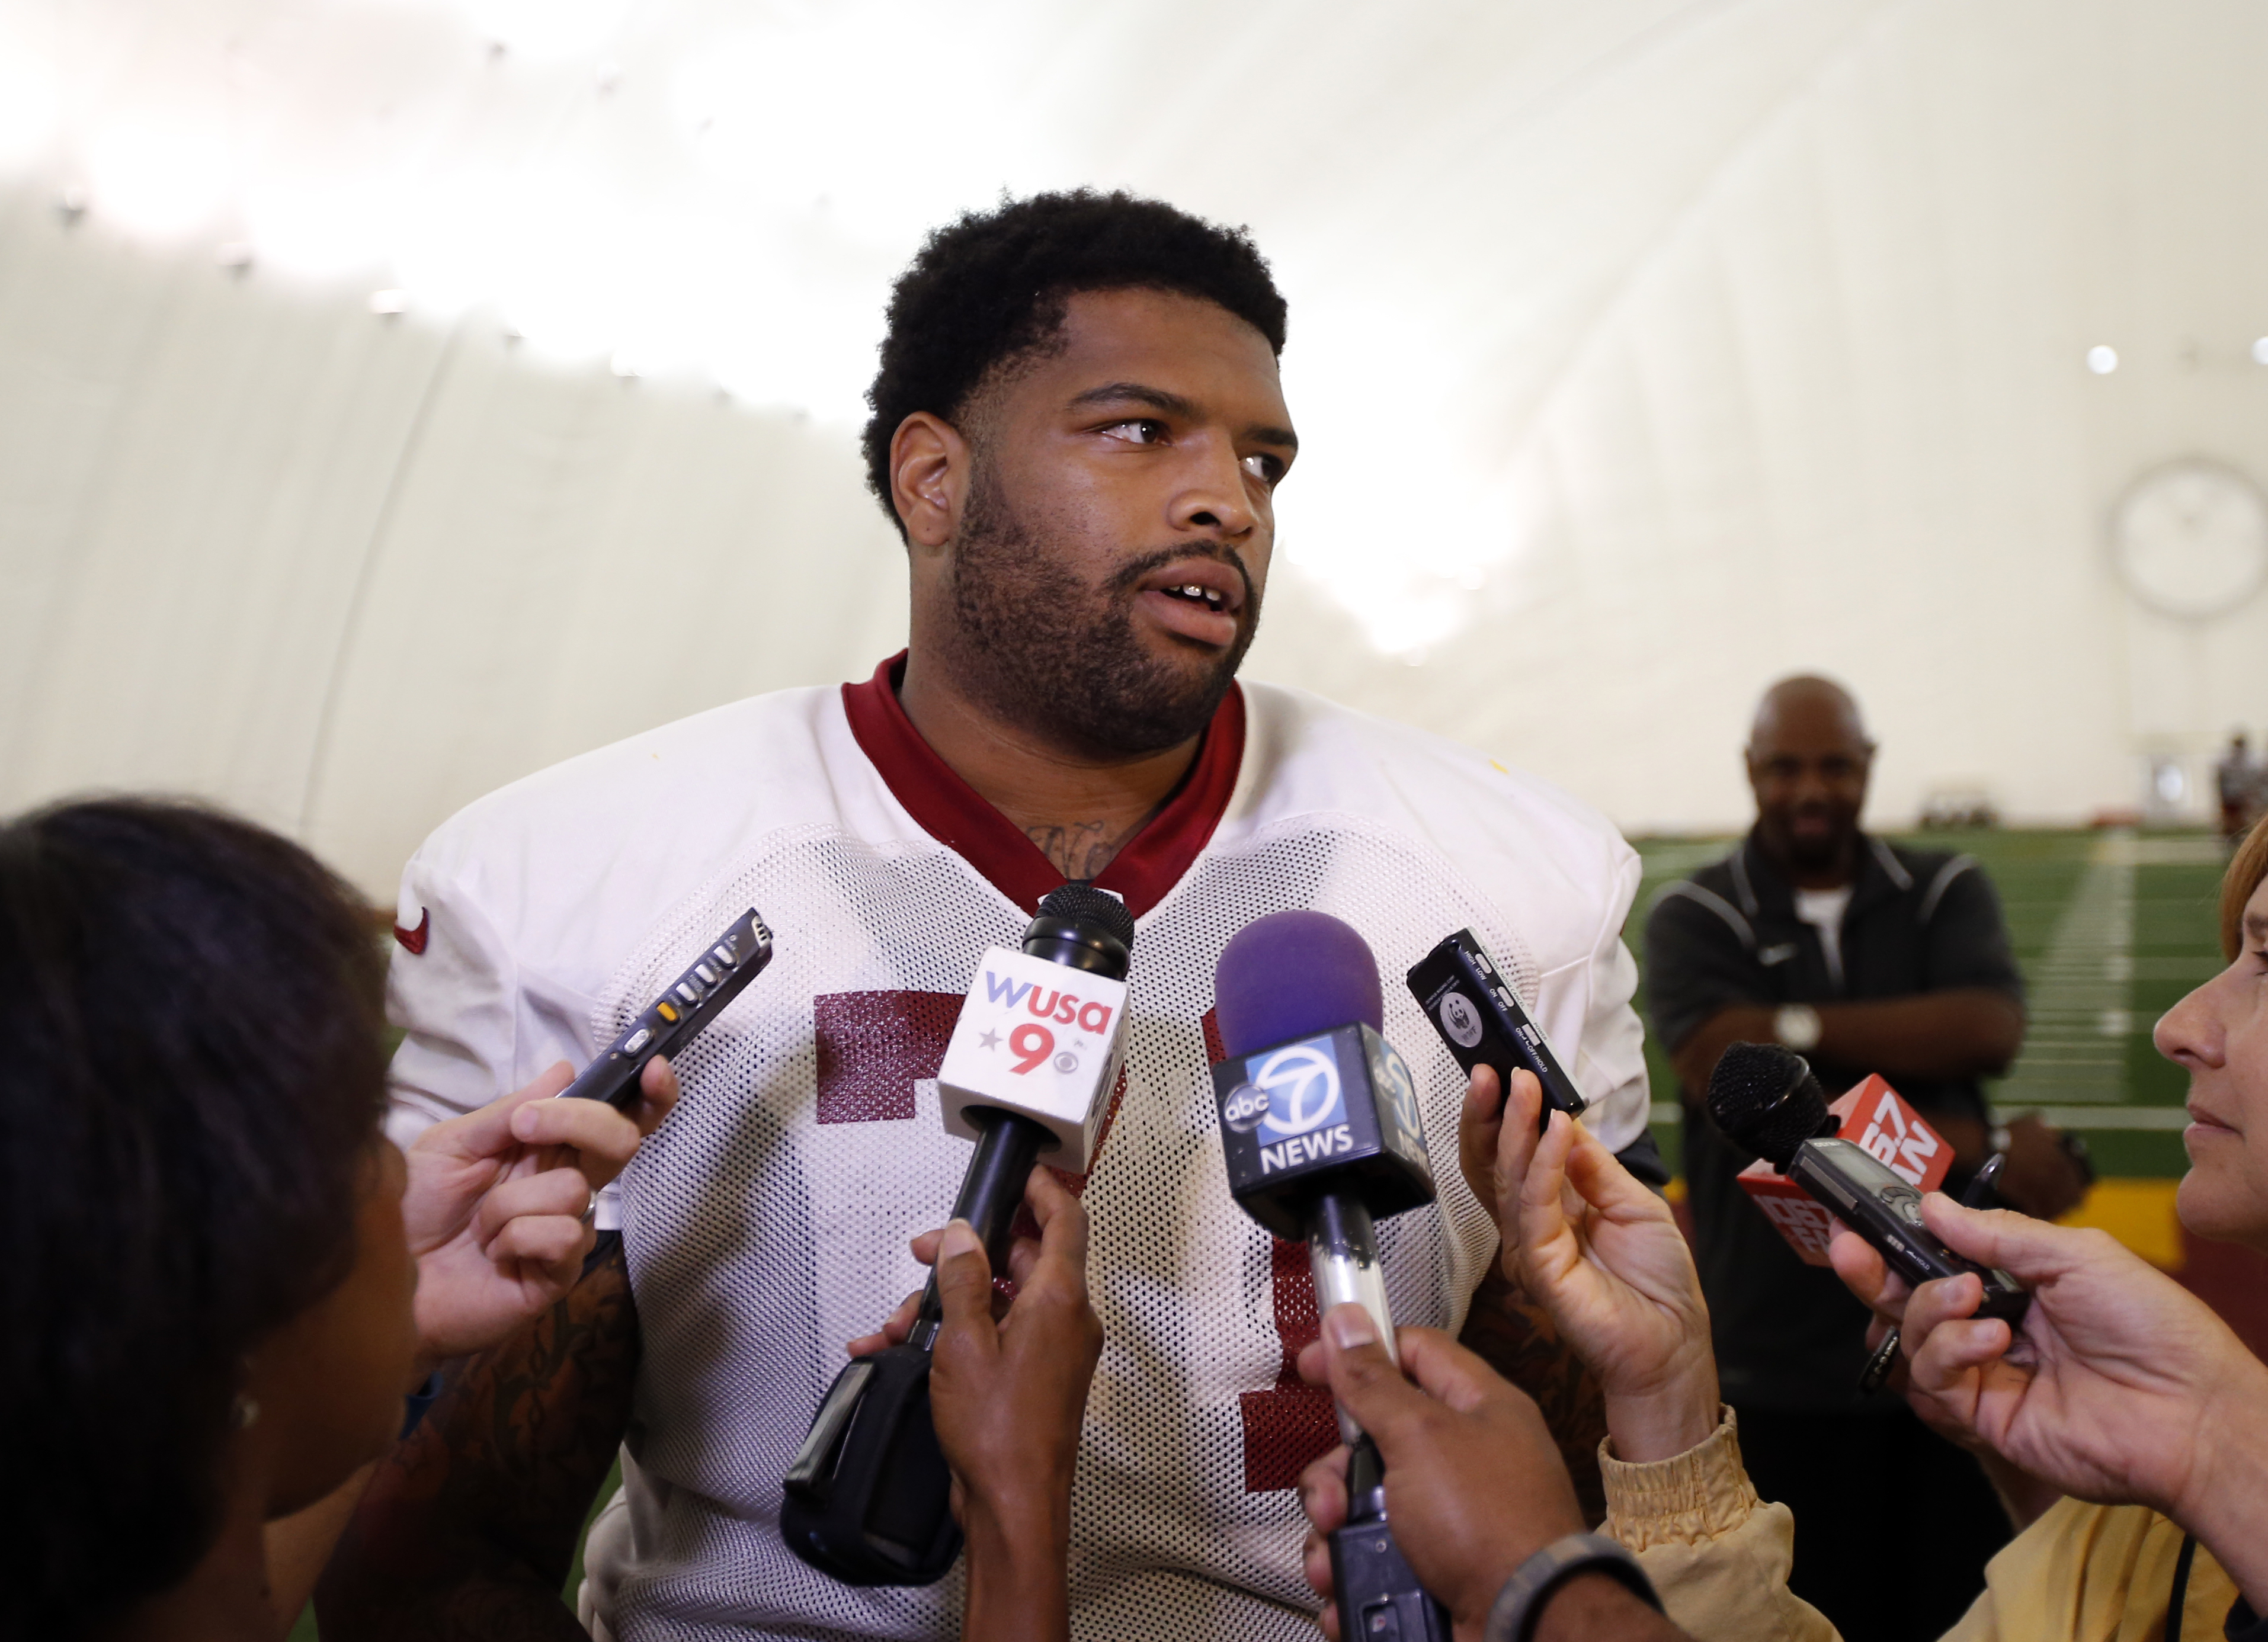 Washington Redskins tackle Trent Williams (71) speaks to reporters after NFL football practice, Tuesday, Aug. 18, 2015, in Ashburn, Va. (AP Photo/Alex Brandon)